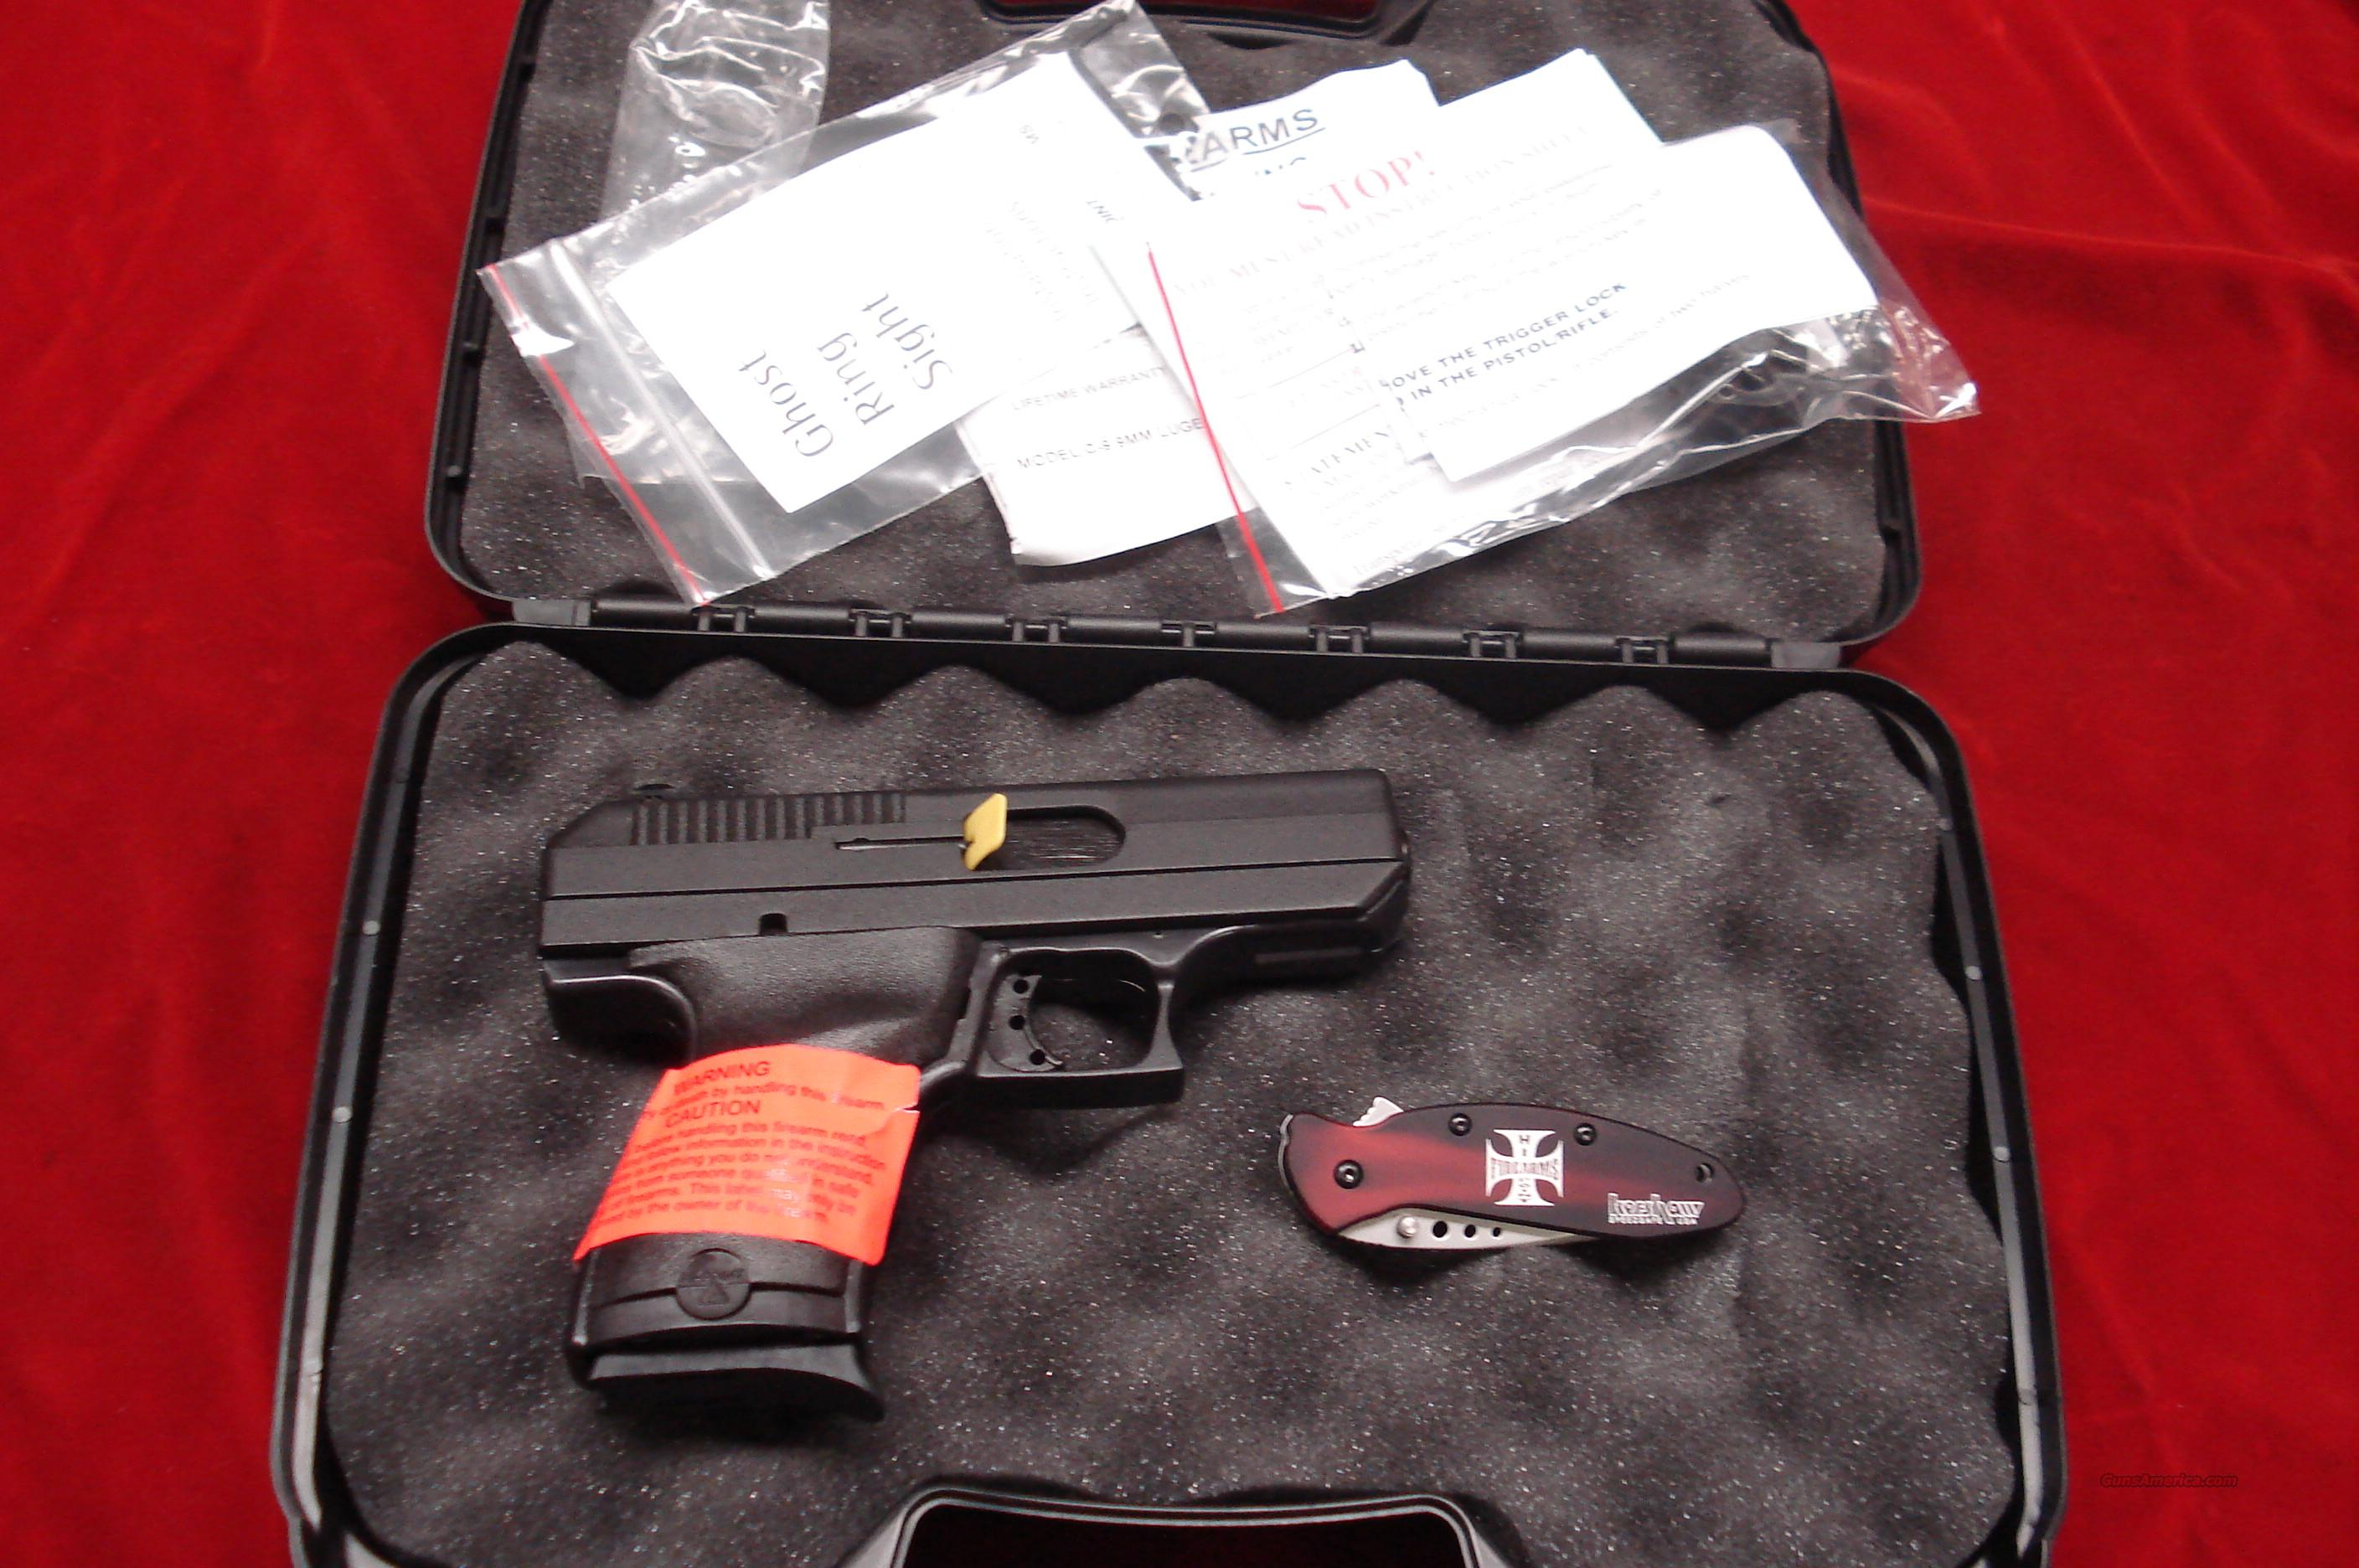 HI POINT 9MM COMPACT WITH KERSHAW KNIFE PACKAGE NEW IN THE BOX   (9HC-K08)   Guns > Pistols > Hi Point Pistols